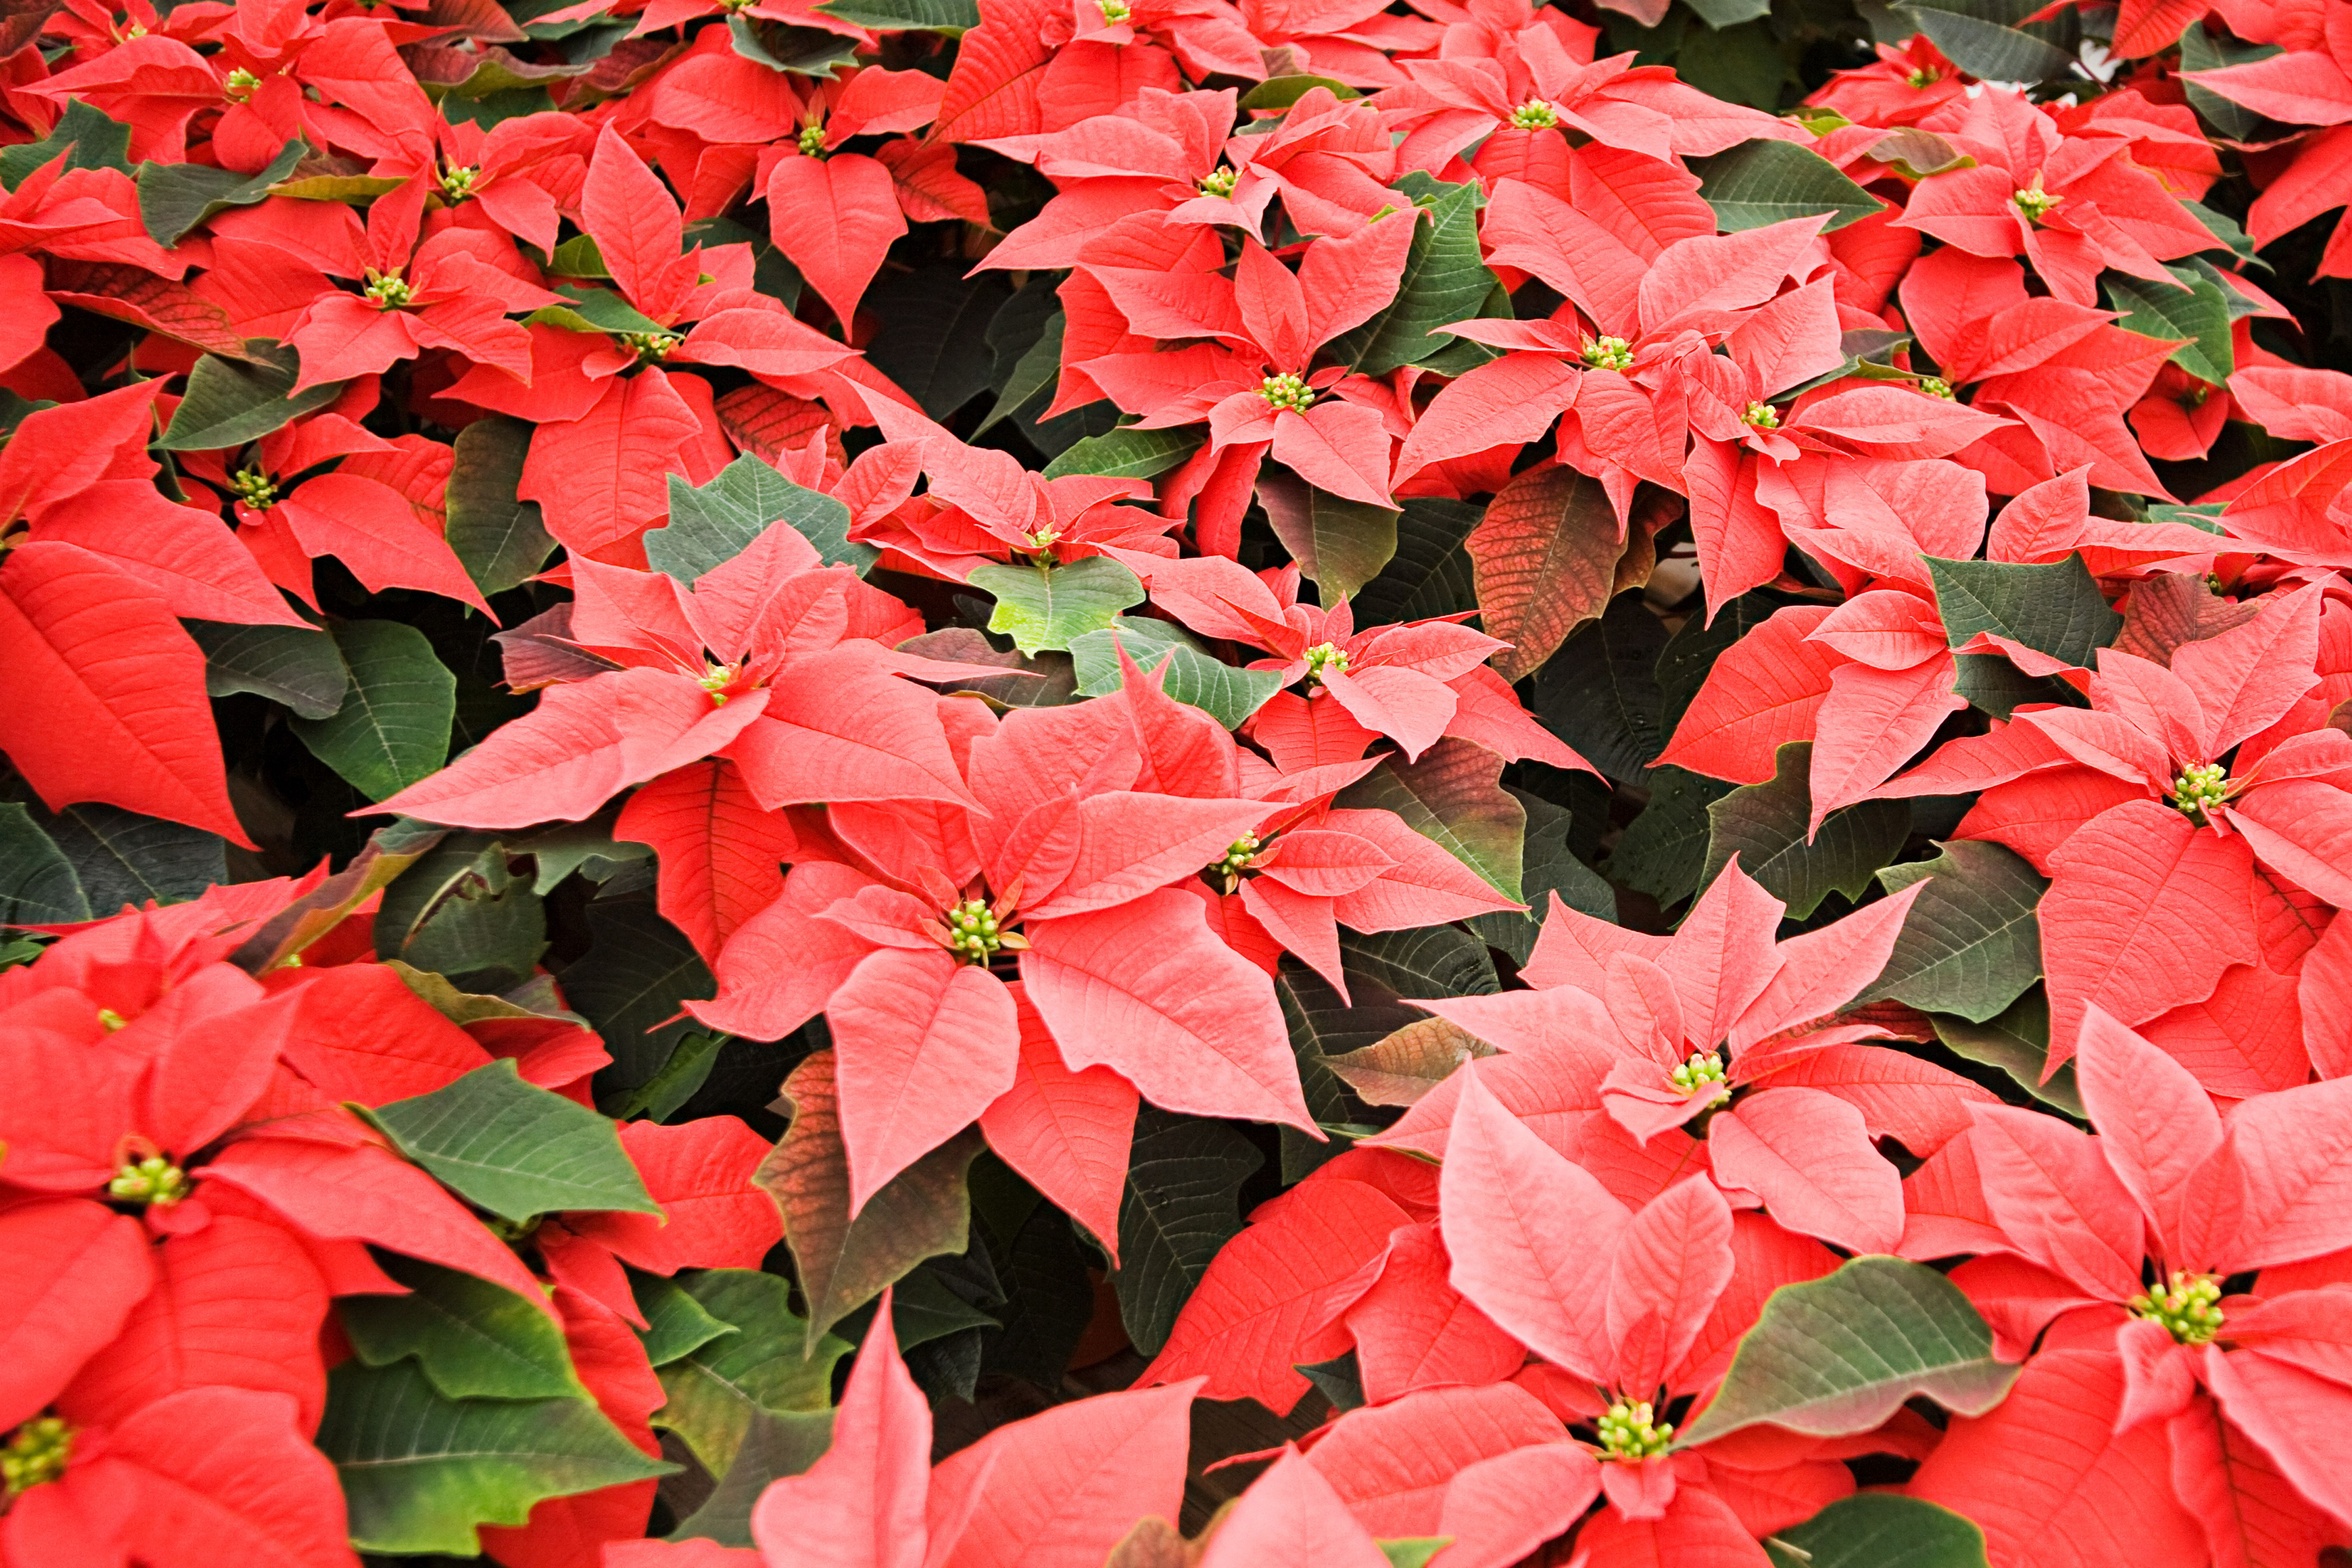 Facts about poinsettias that may surprise you